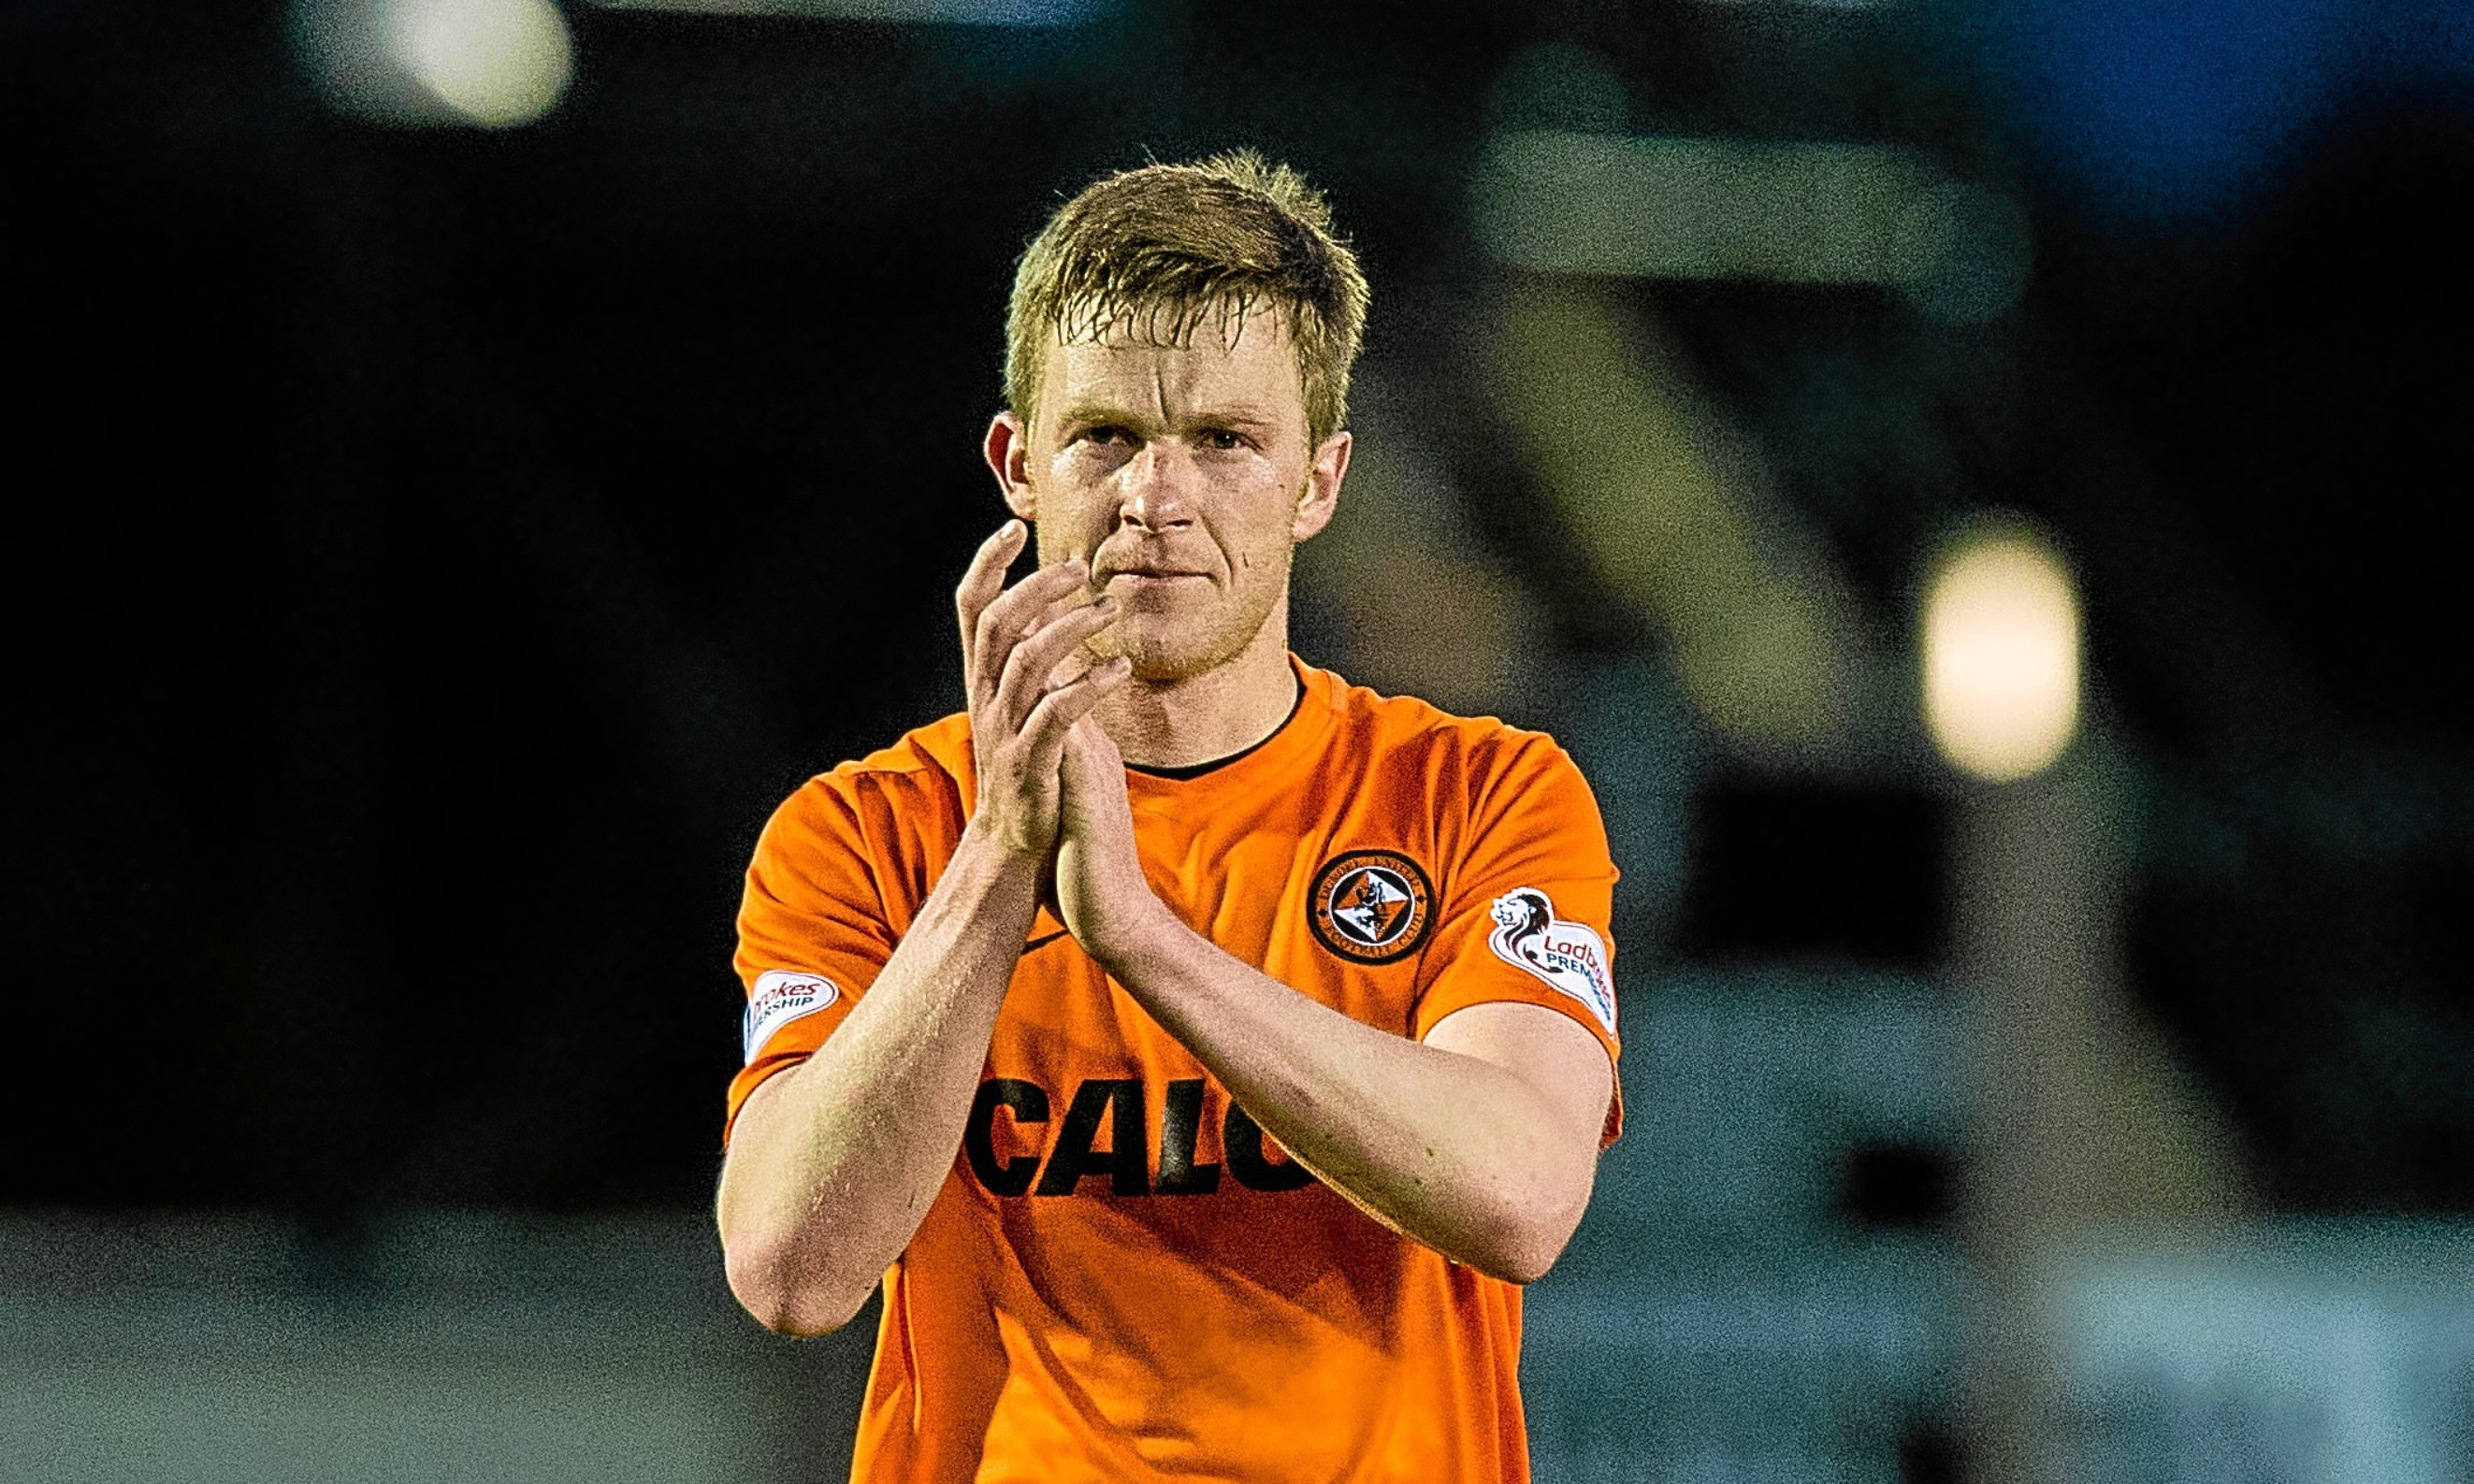 Paul Dixon applauds the travelling support after the 3-2 win over Inverness Caley Thistle.